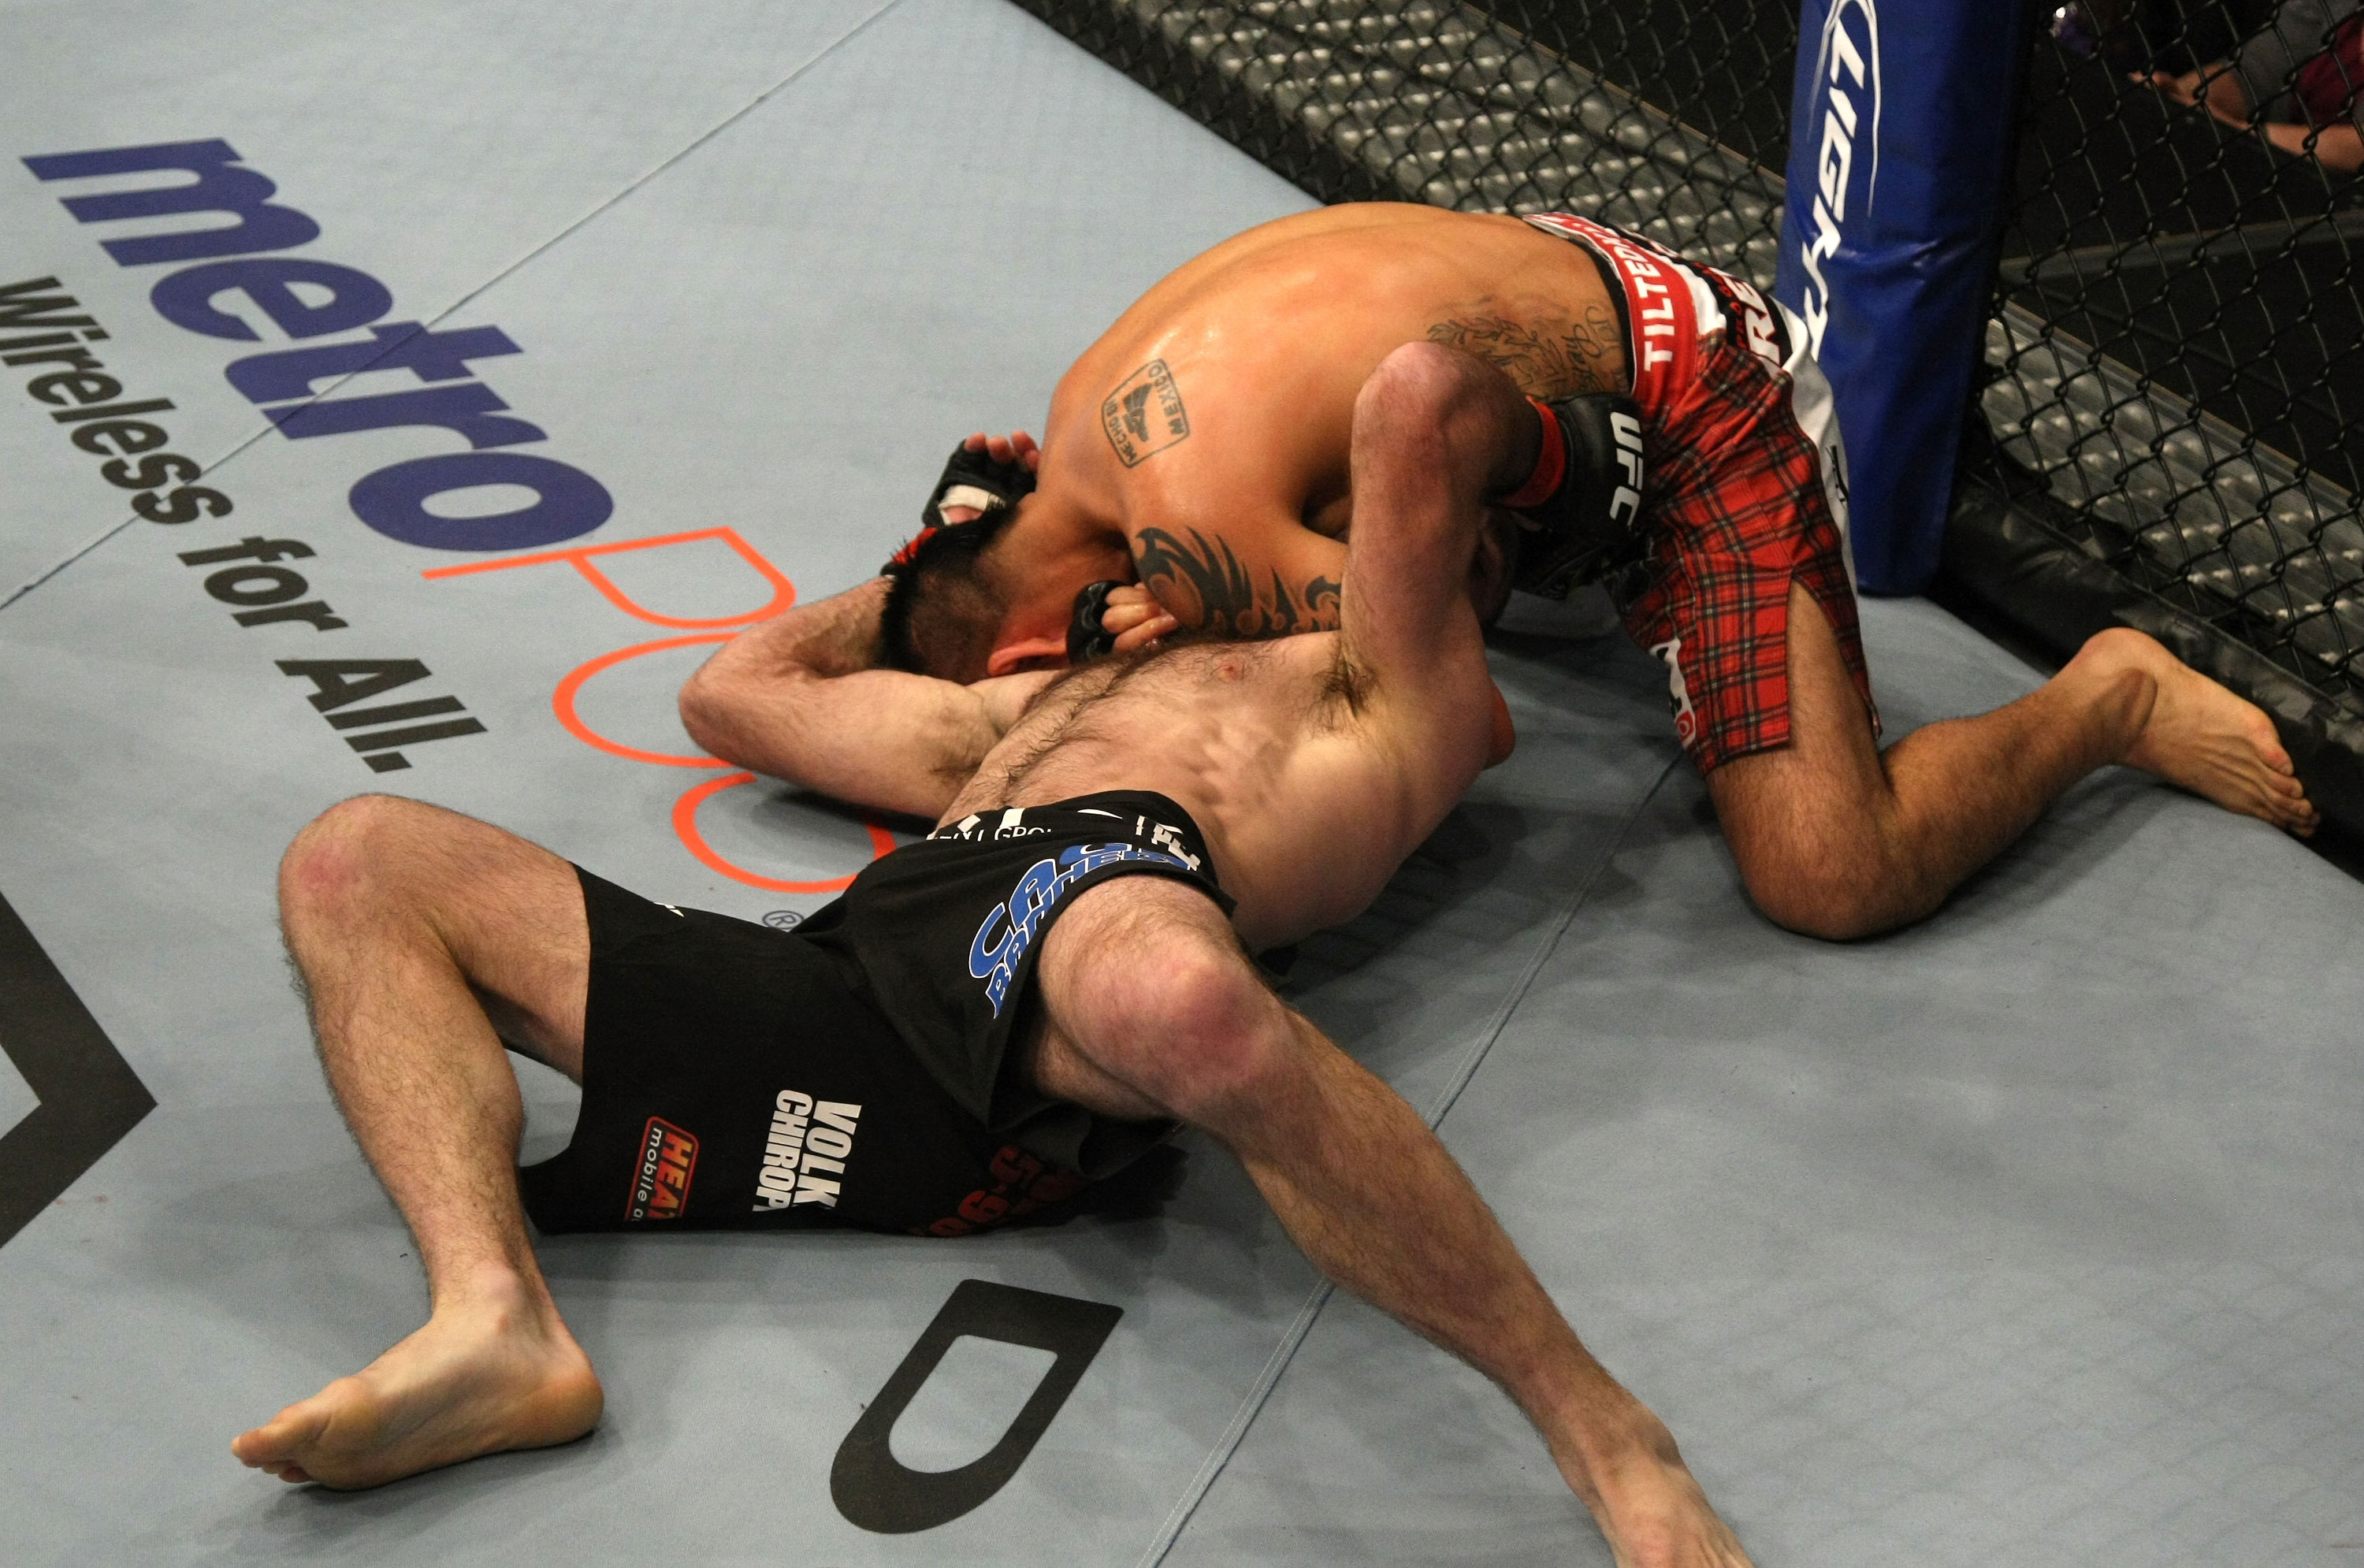 LAS VEGAS, NV - DECEMBER 30:  Efrain Escudero (top) attempts to choke out Jacob Volkmann during the UFC 141 event at the MGM Grand Garden Arena on December 30, 2011 in Las Vegas, Nevada.  (Photo by Donald Miralle/Zuffa LLC/Zuffa LLC via Getty Images) *** Local Caption *** Efrain Escudero; Jacob Volkmann